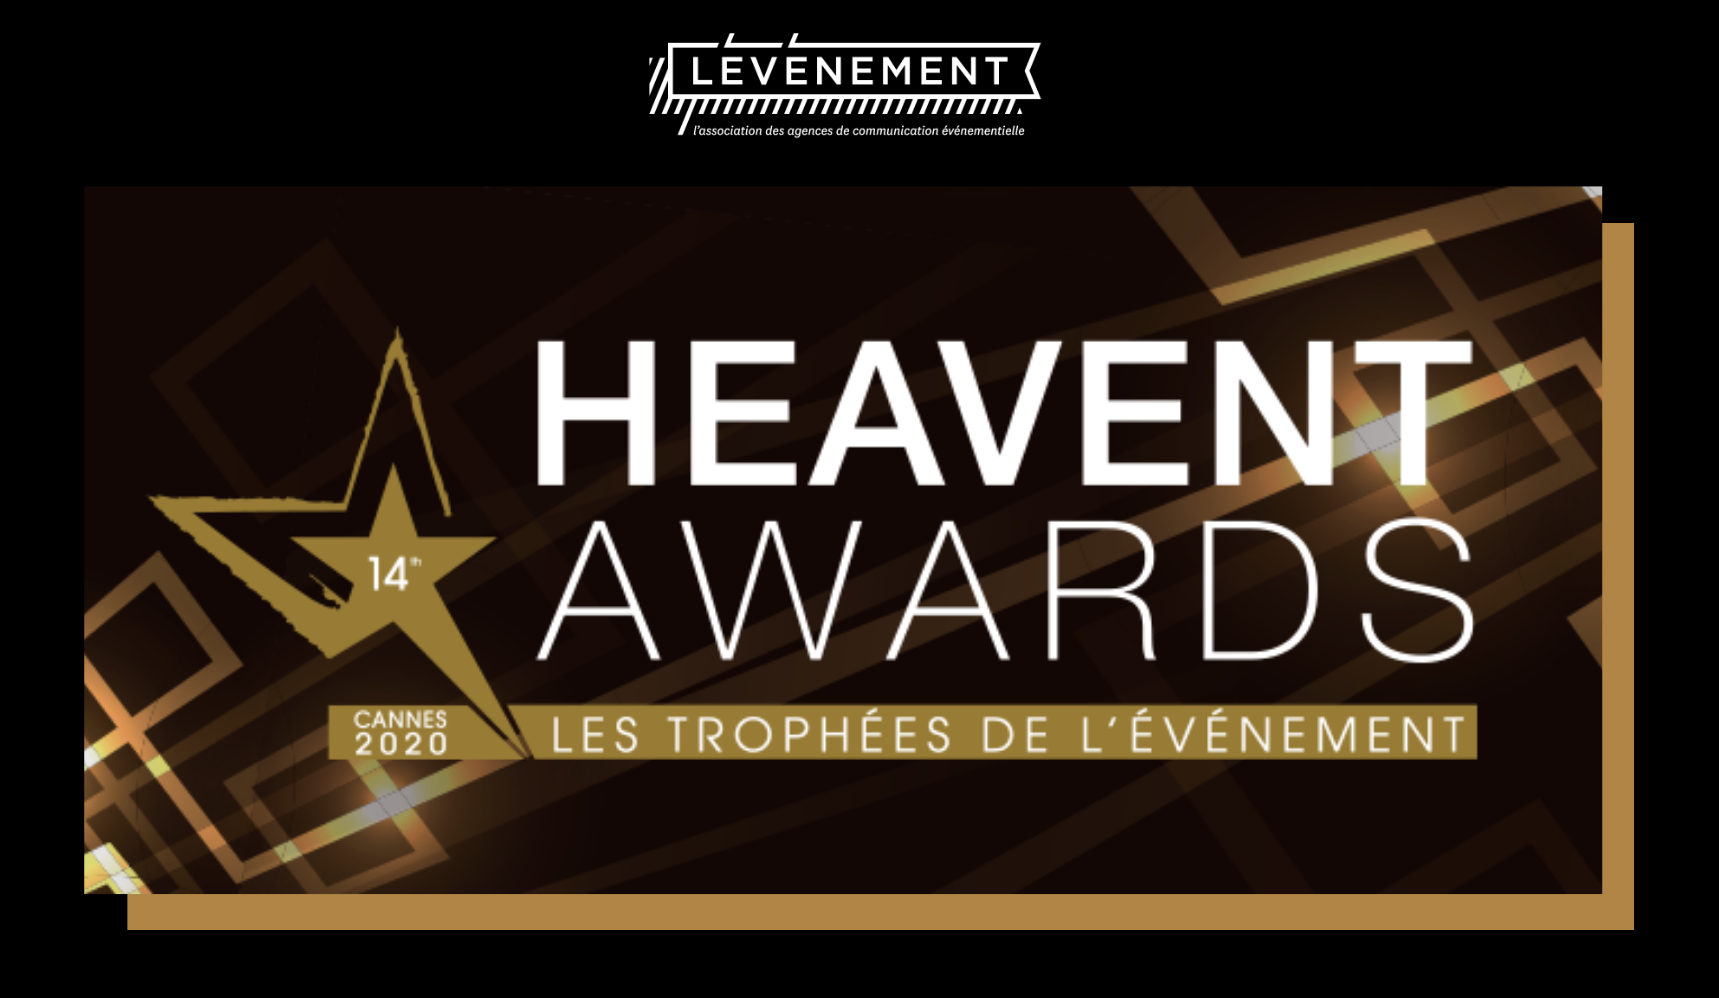 Heavent Awards 2020